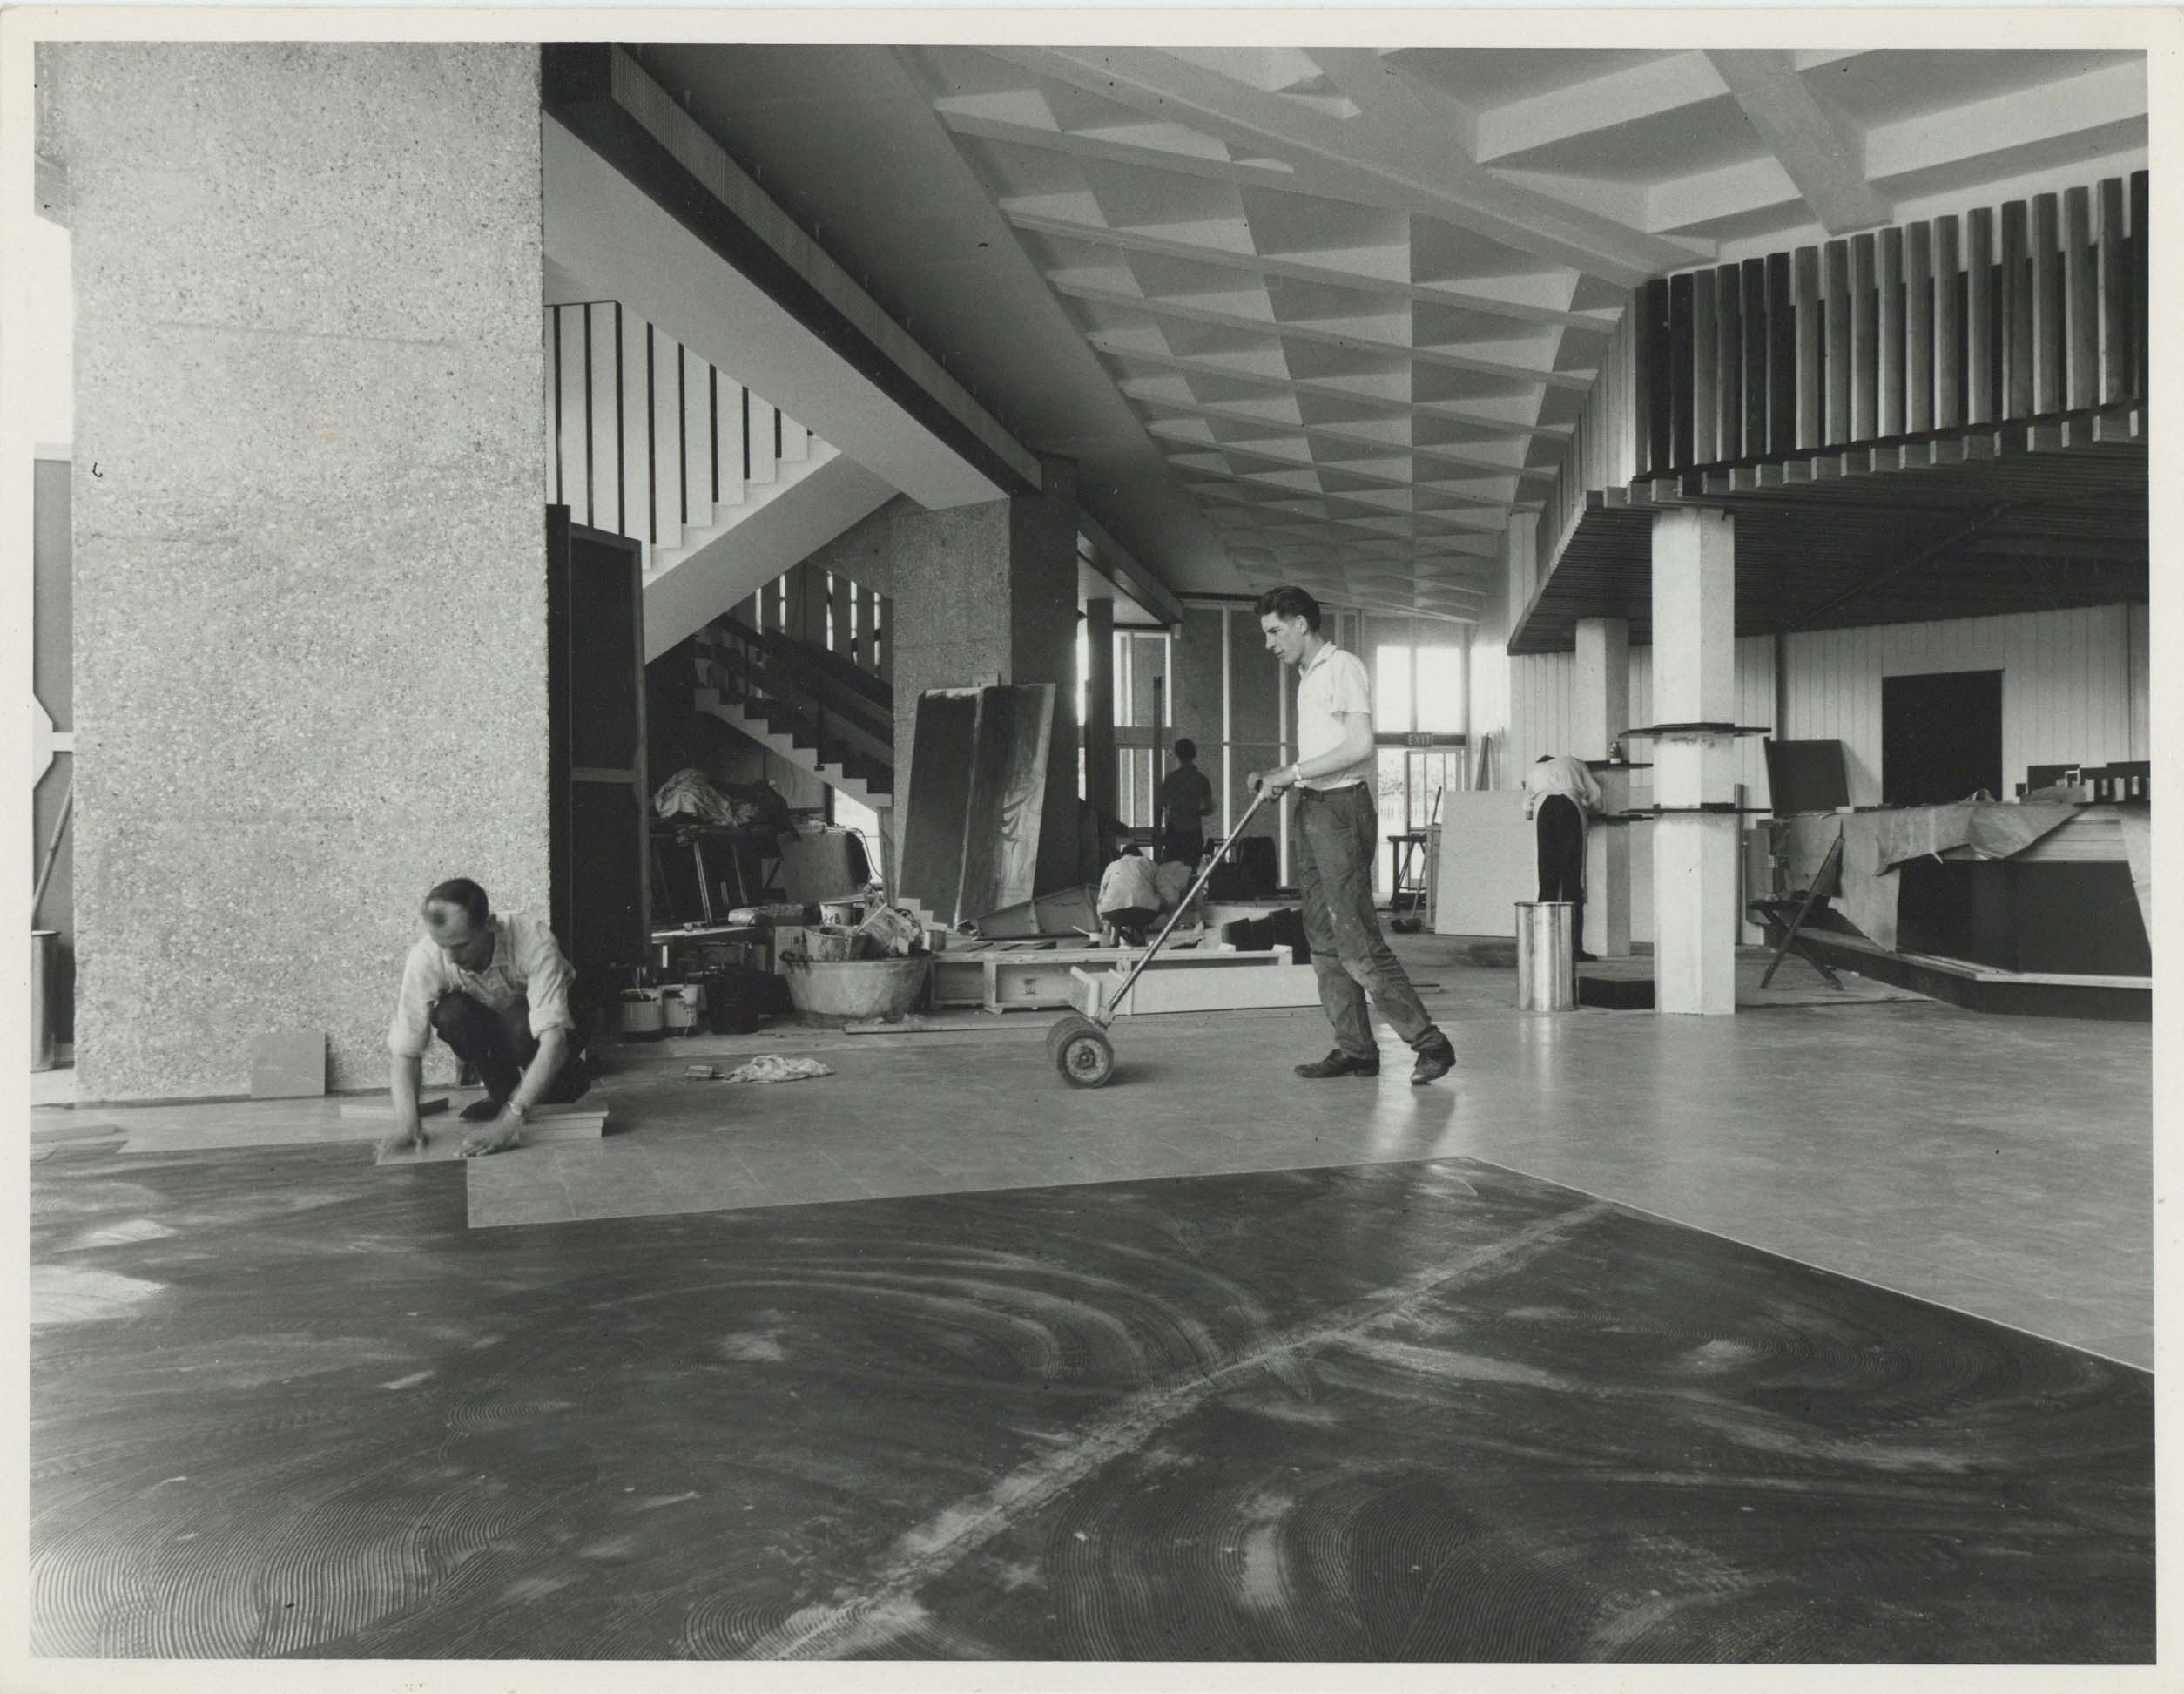 Photograph Interior Foyer Floor construction - Photographer uknown - Date unknown - Box 71 CFT WSRO - H21xW16cm